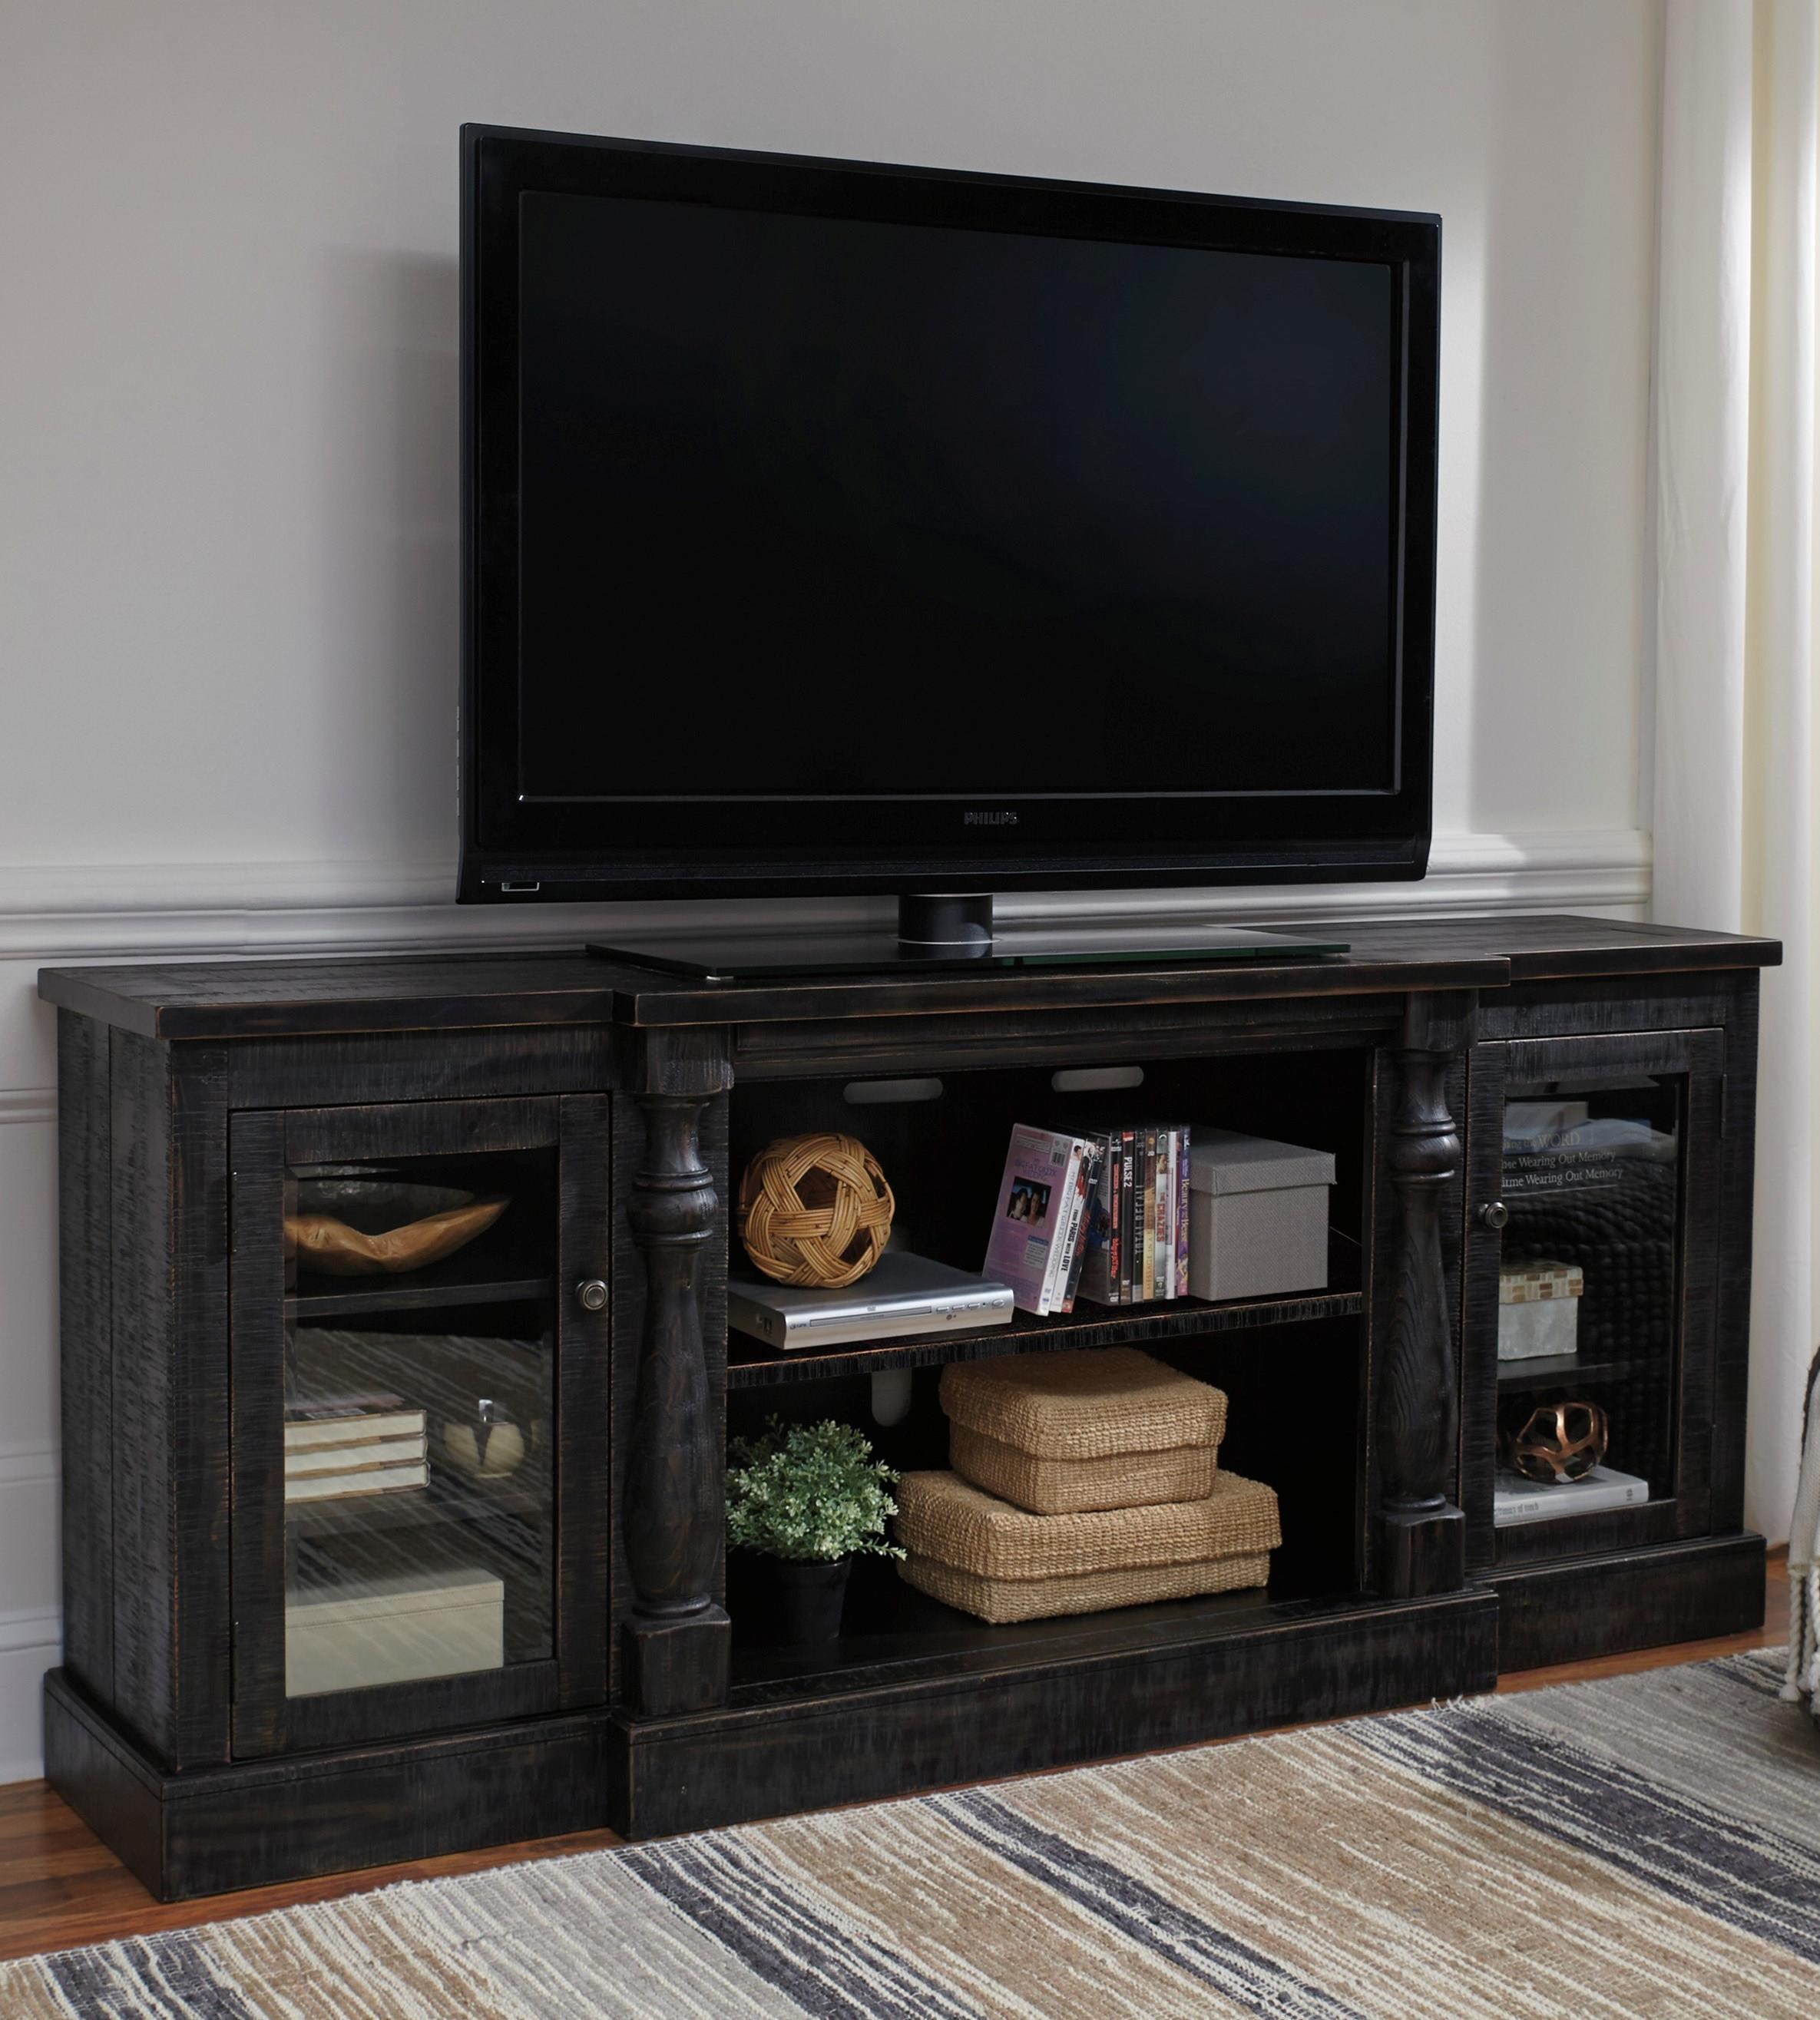 Mallacar XL TV Stand by Signature Design by Ashley at Rife's Home Furniture